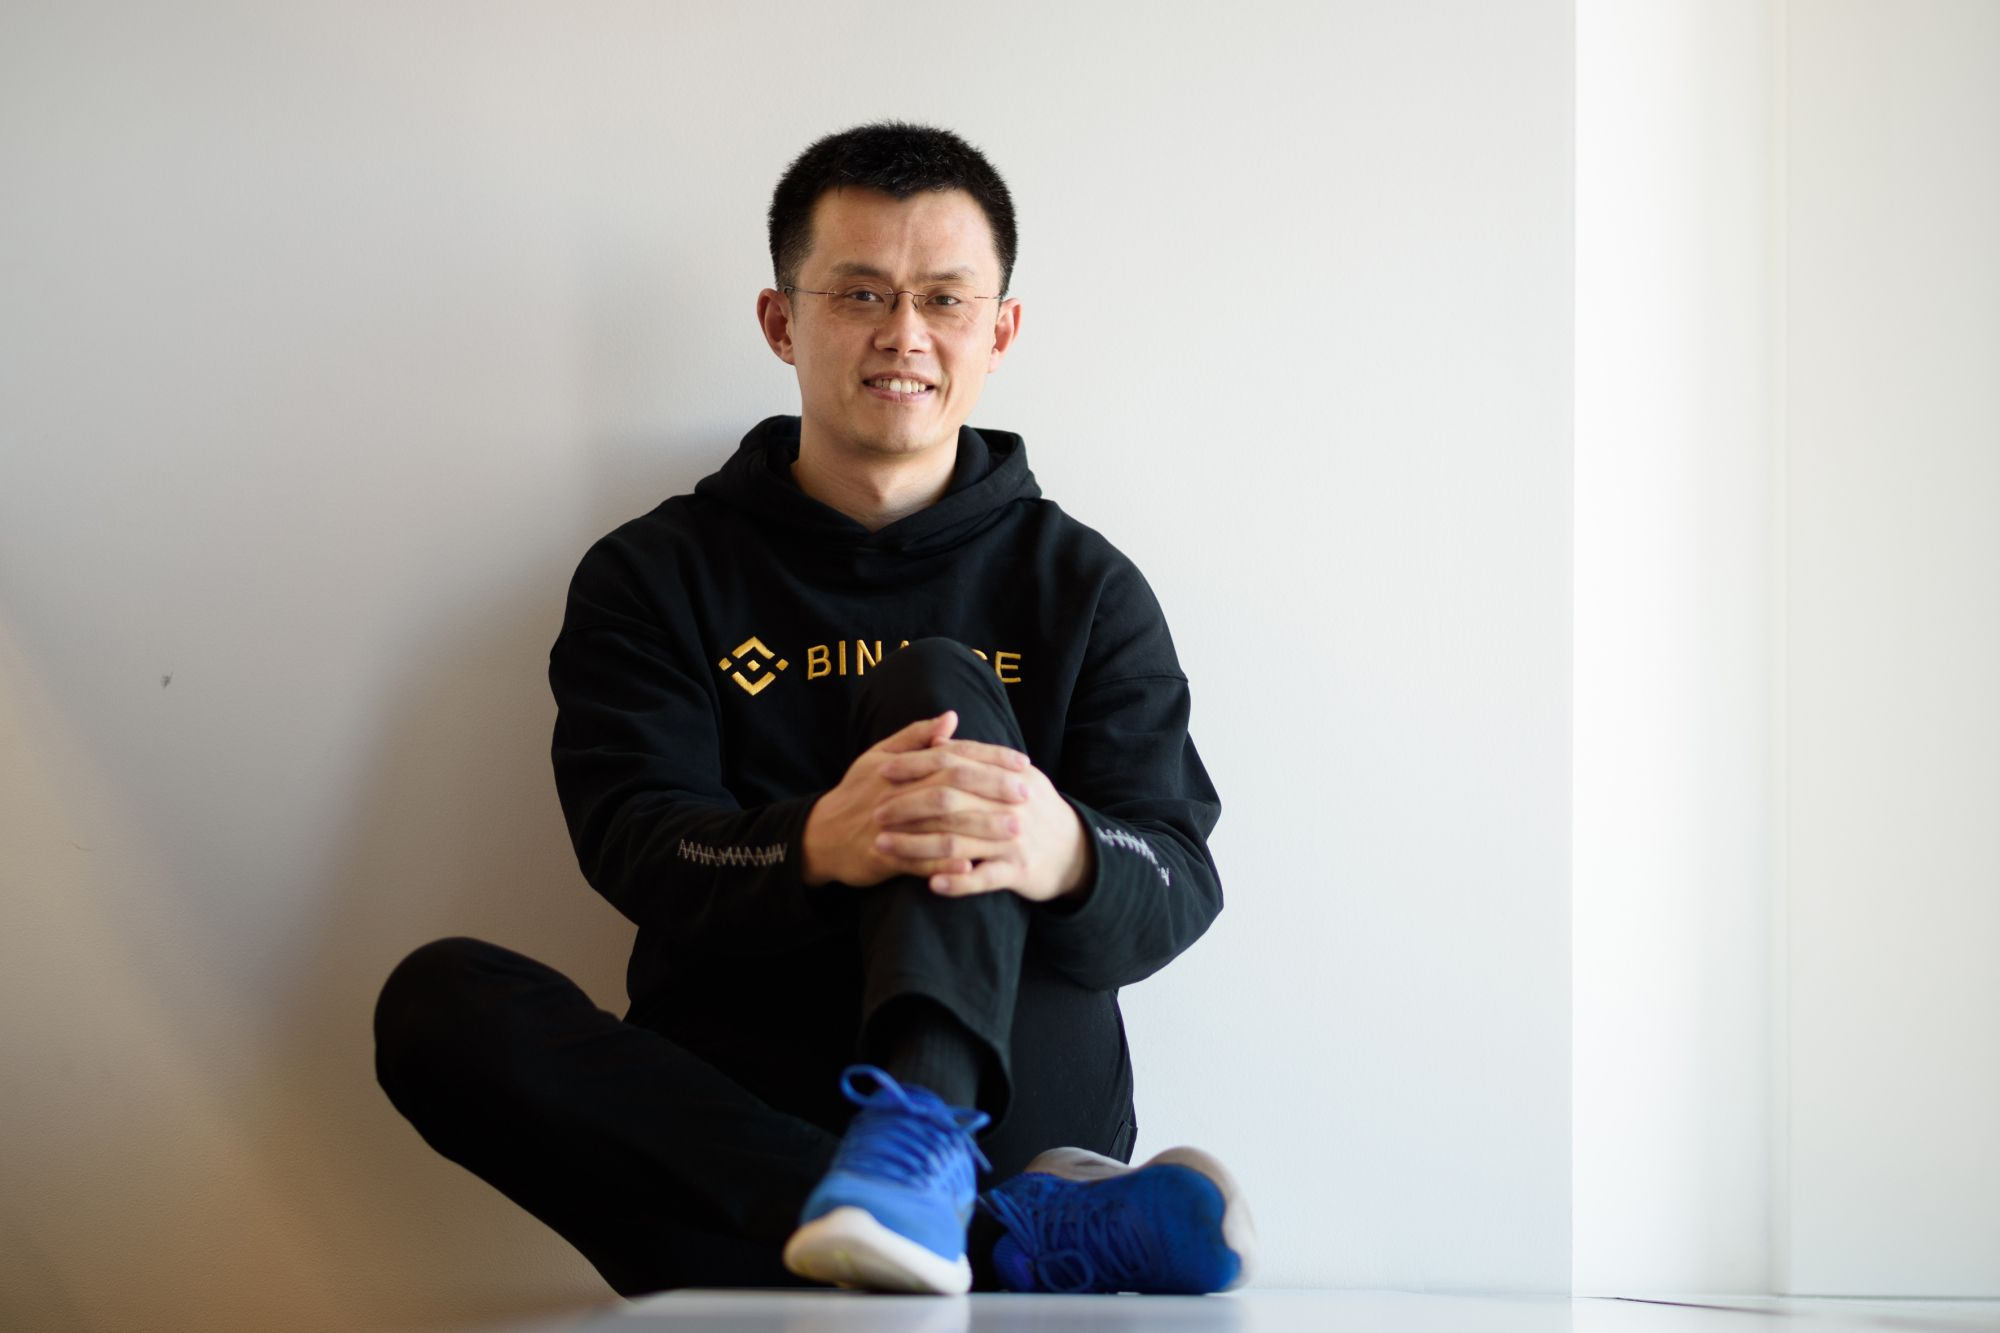 /interoperability-would-mean-real-freedom-of-money-binance-ceo-cz-original-interview-5a2z3e30 feature image